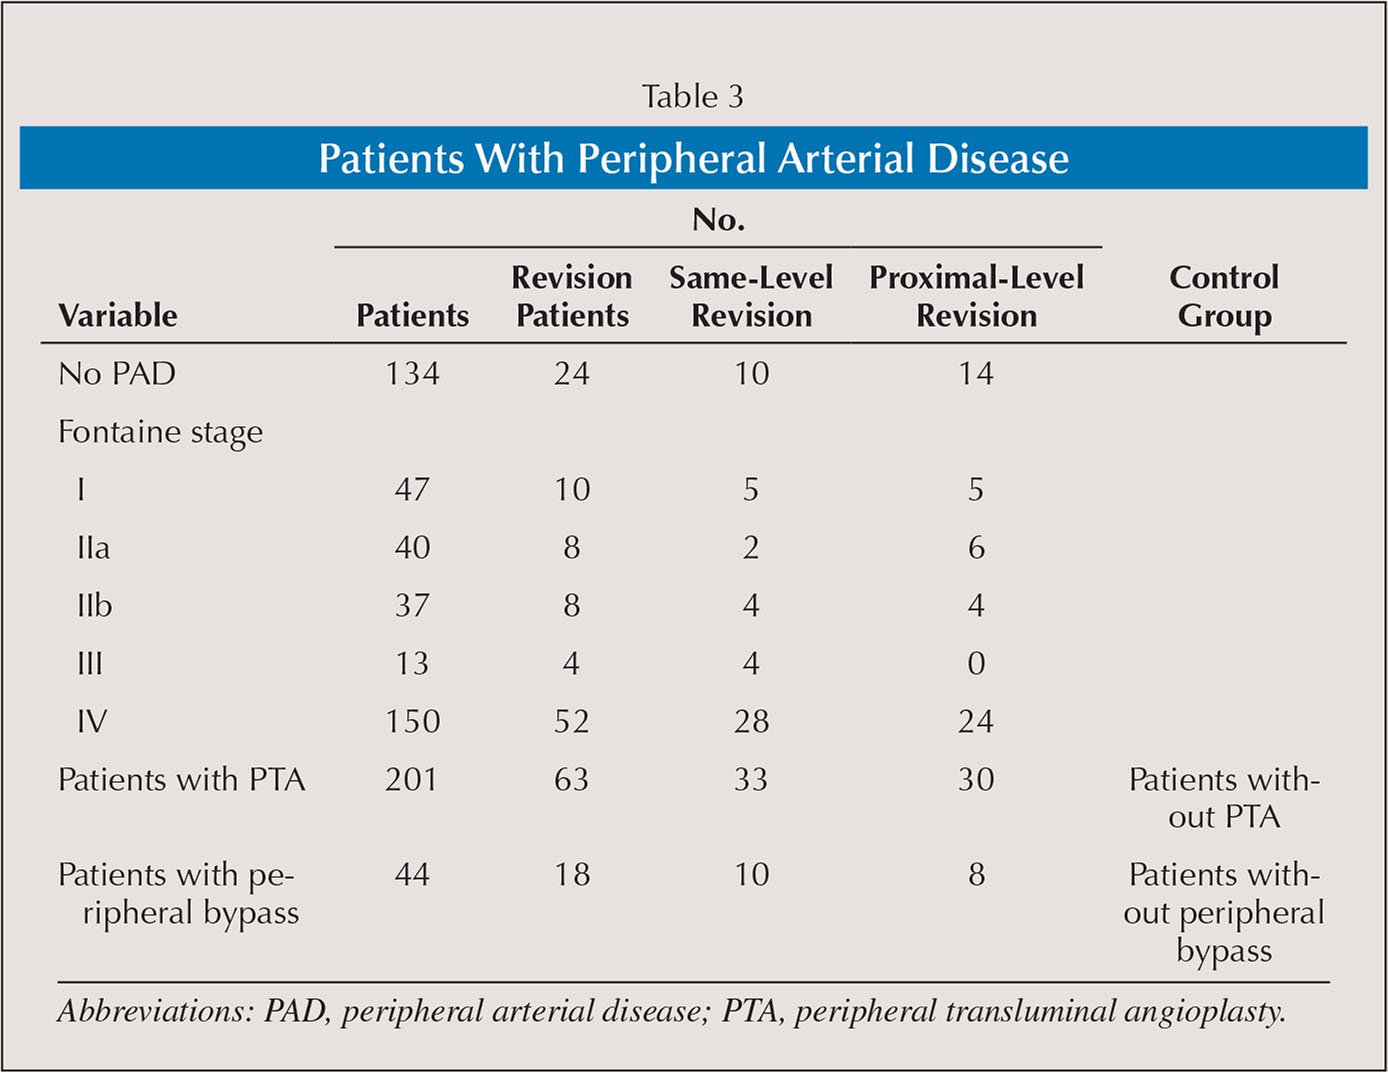 Patients With Peripheral Arterial Disease